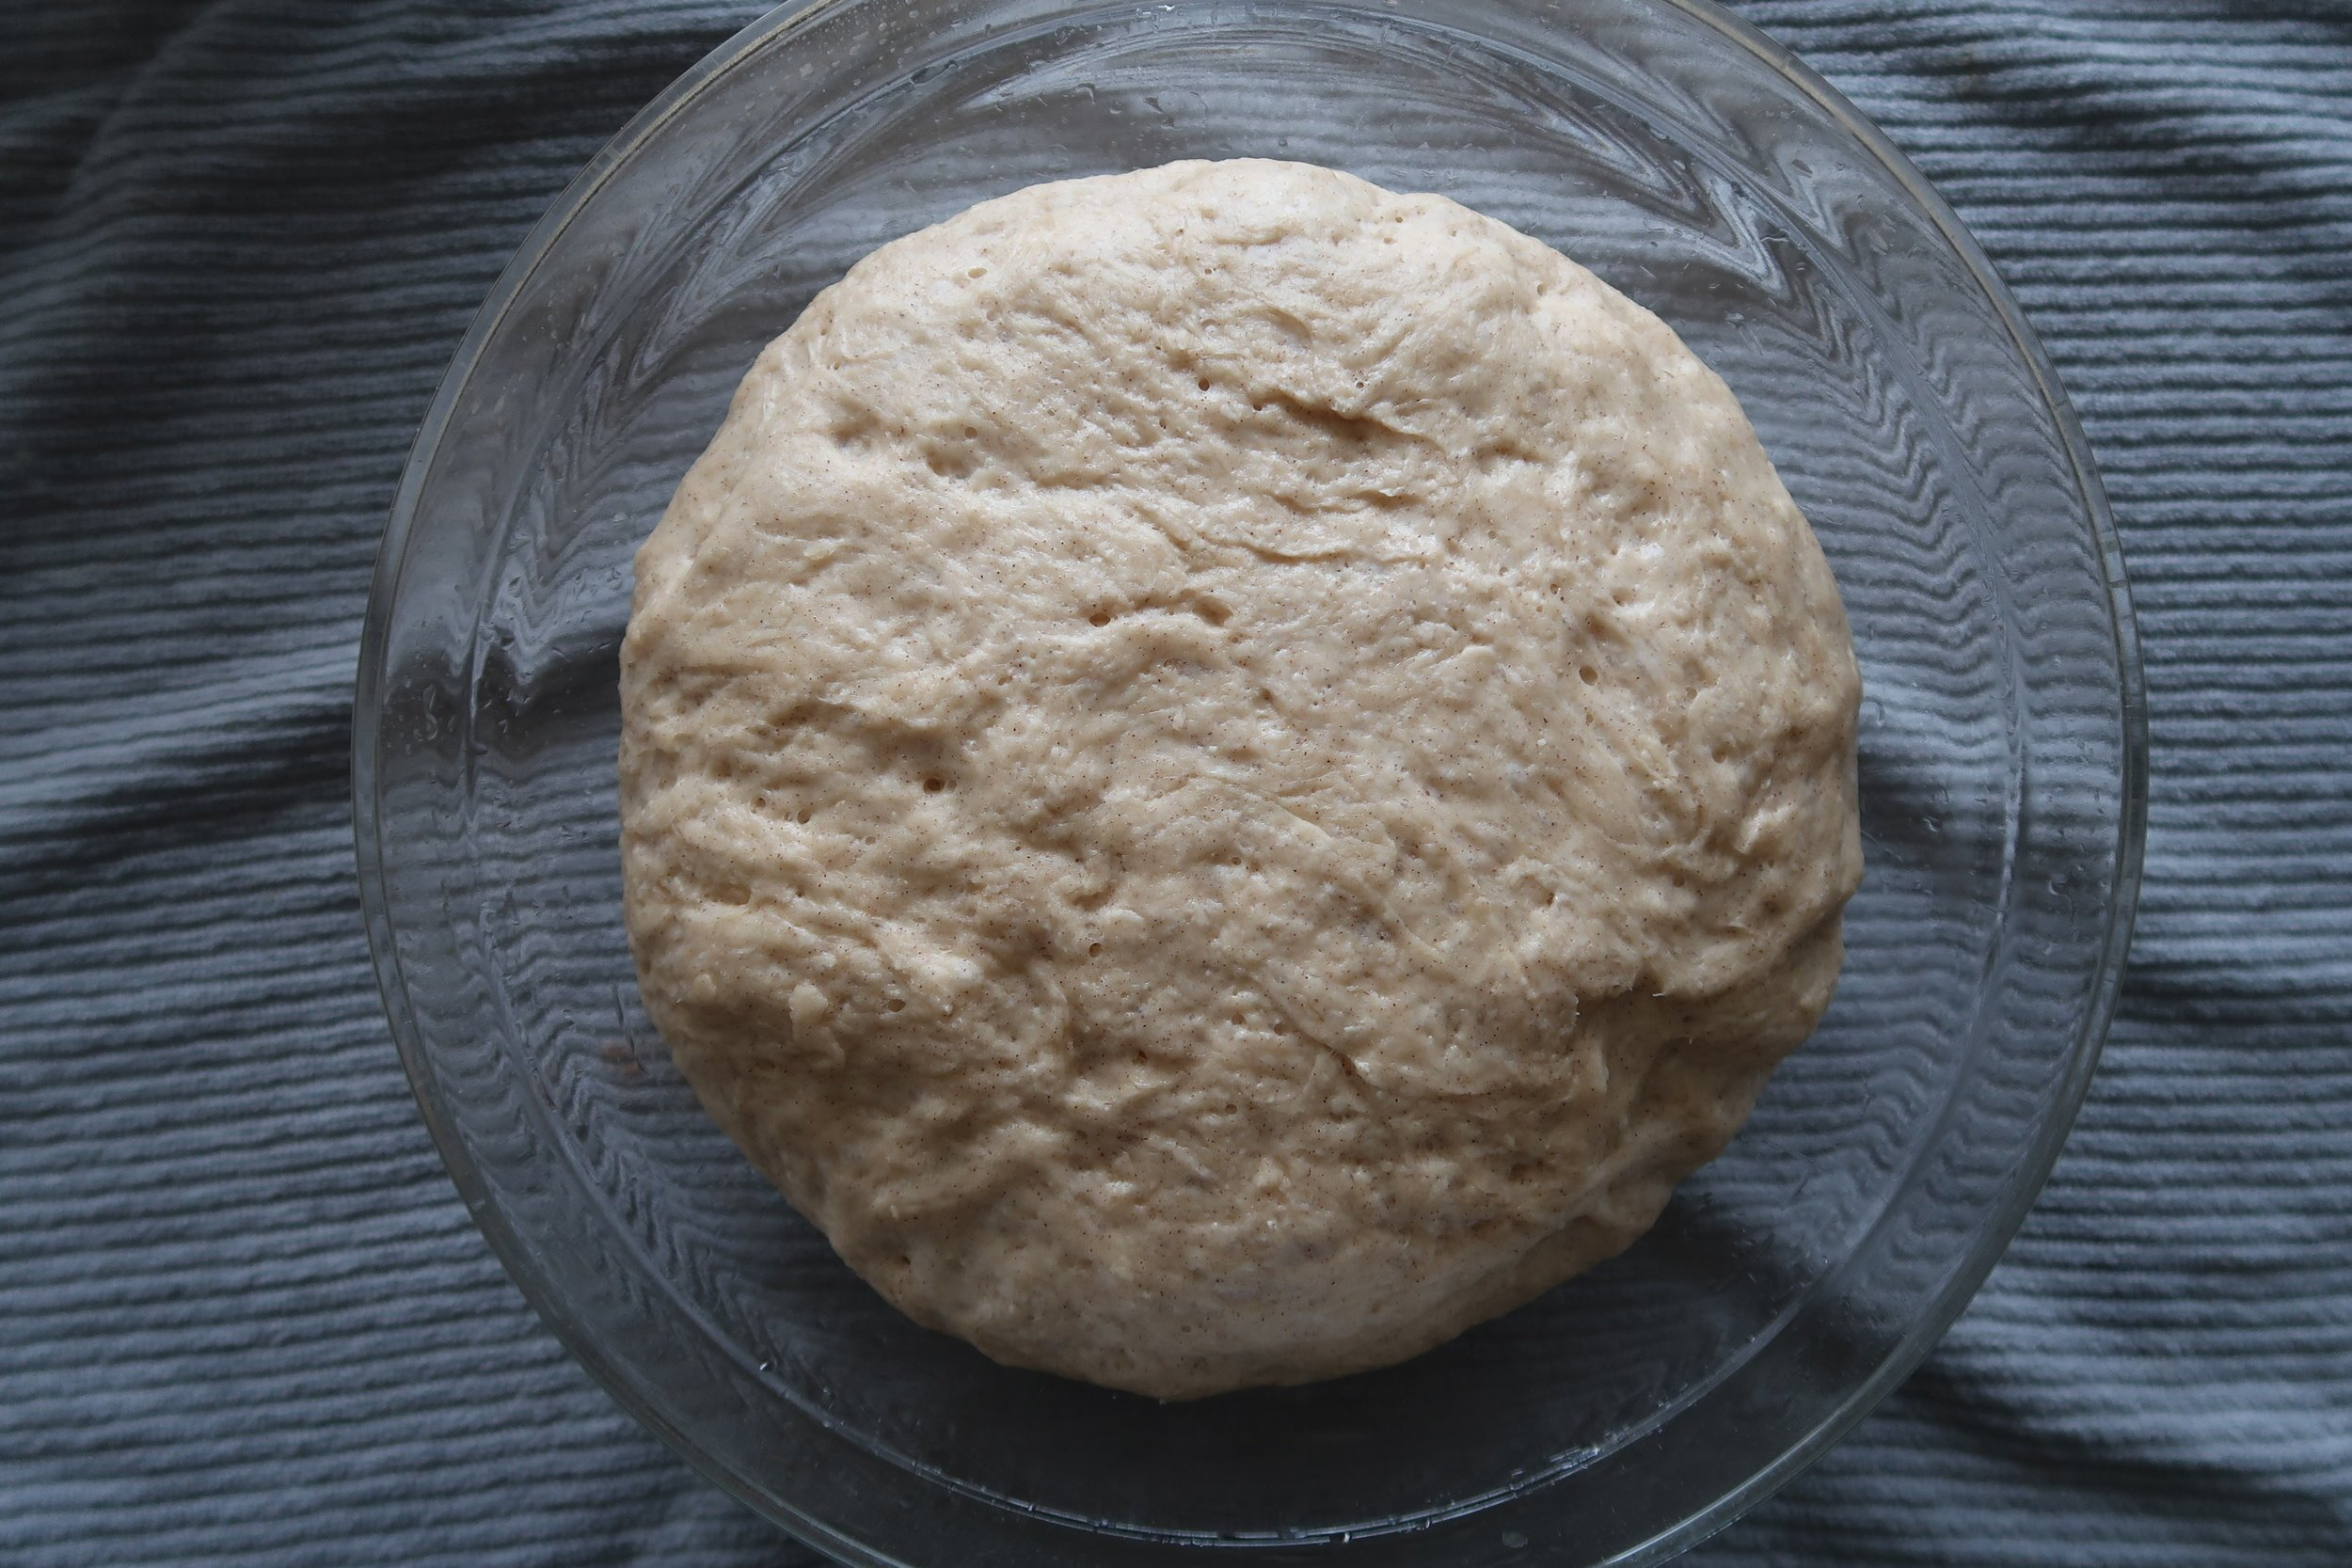 Proofed cinnamon roll dough.